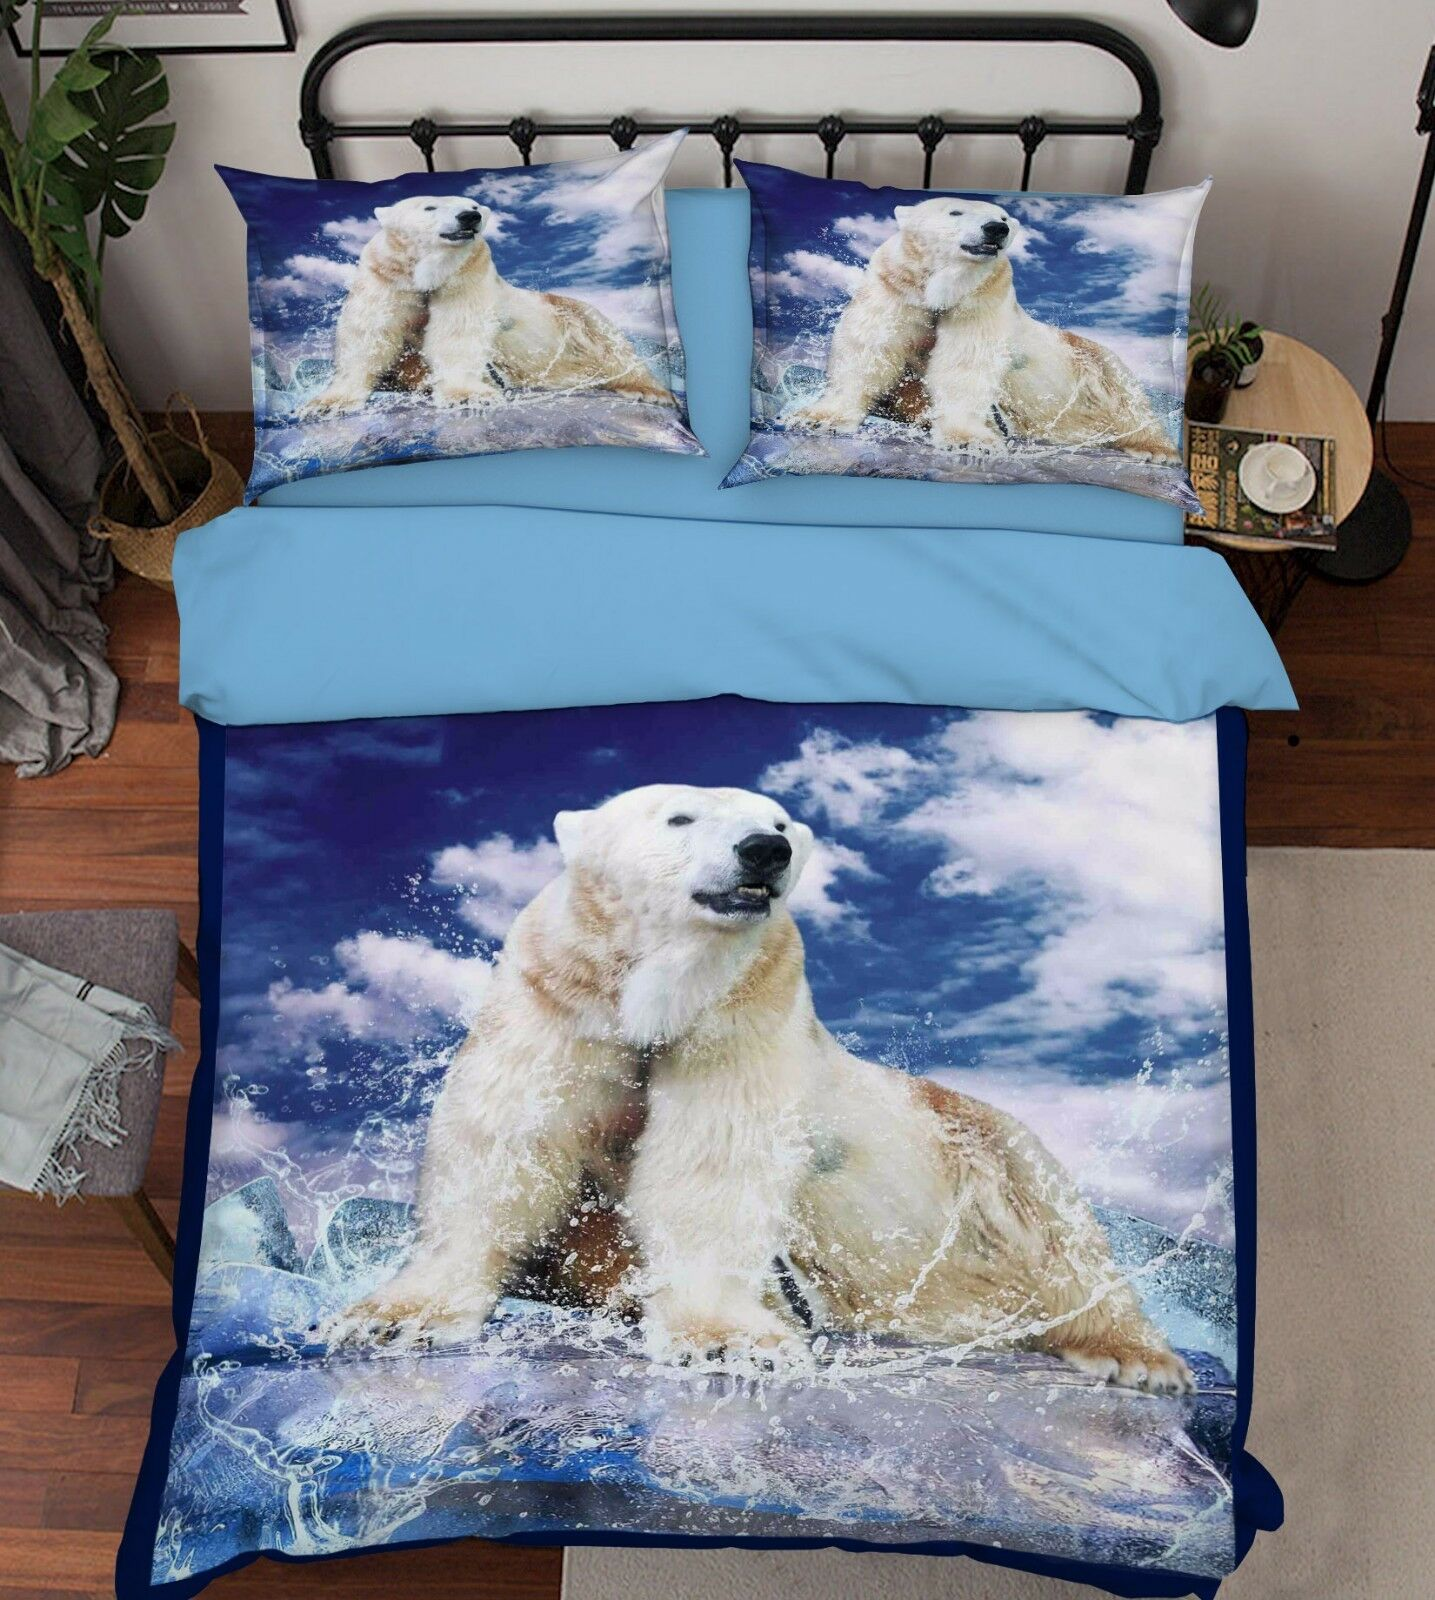 3D Weiß Bear Sky 76 Bett Pillowcases Quilt Duvet Startseite Set Single Königin AU Carly